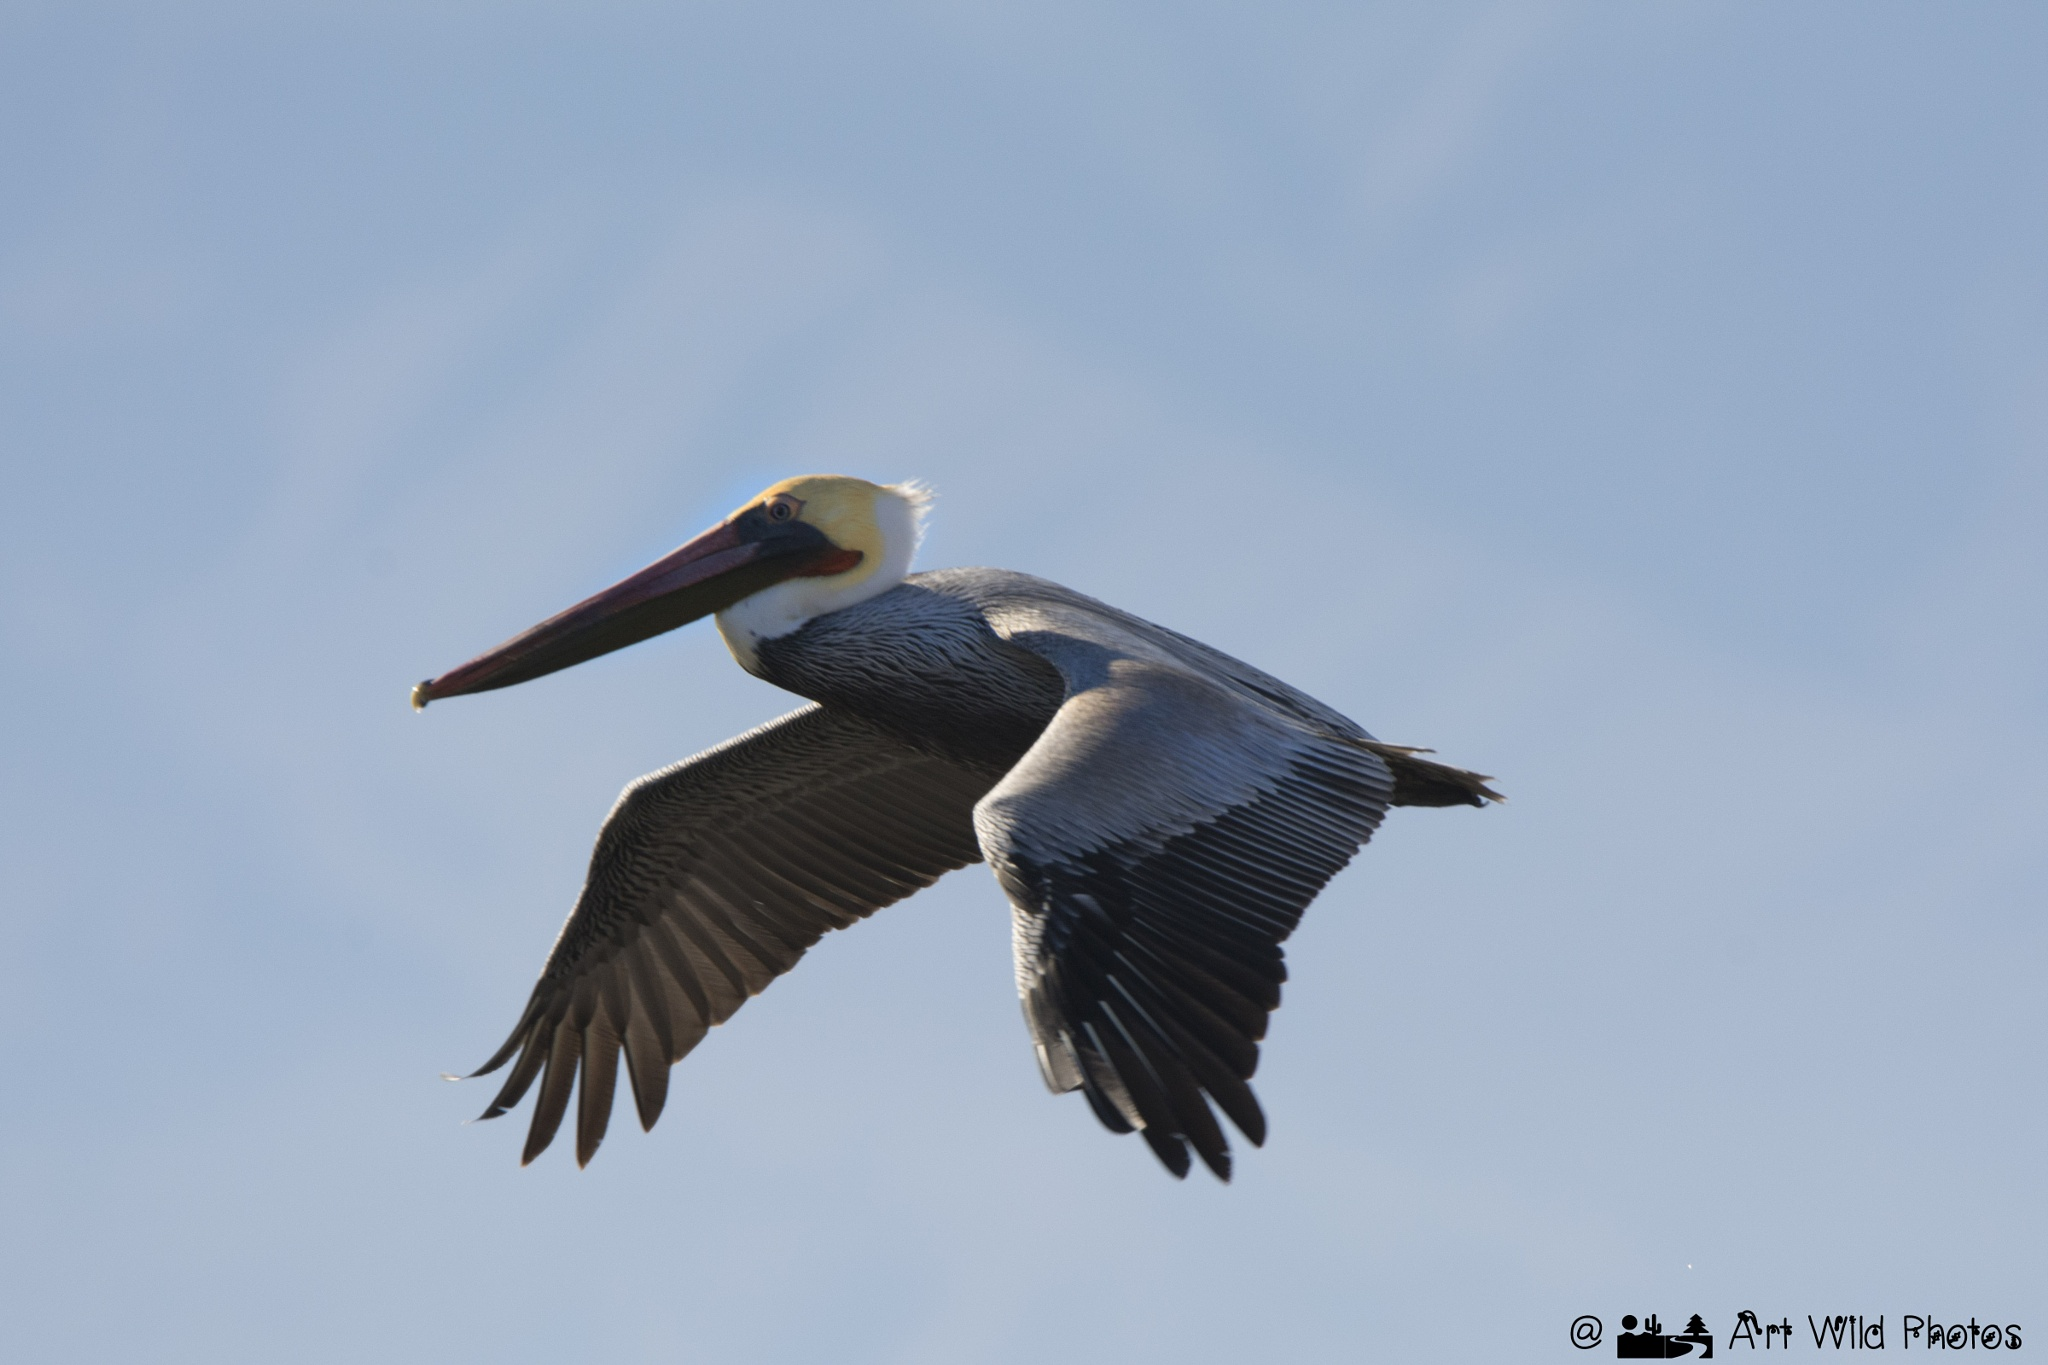 Beauty and grace in flight by artwildphotos